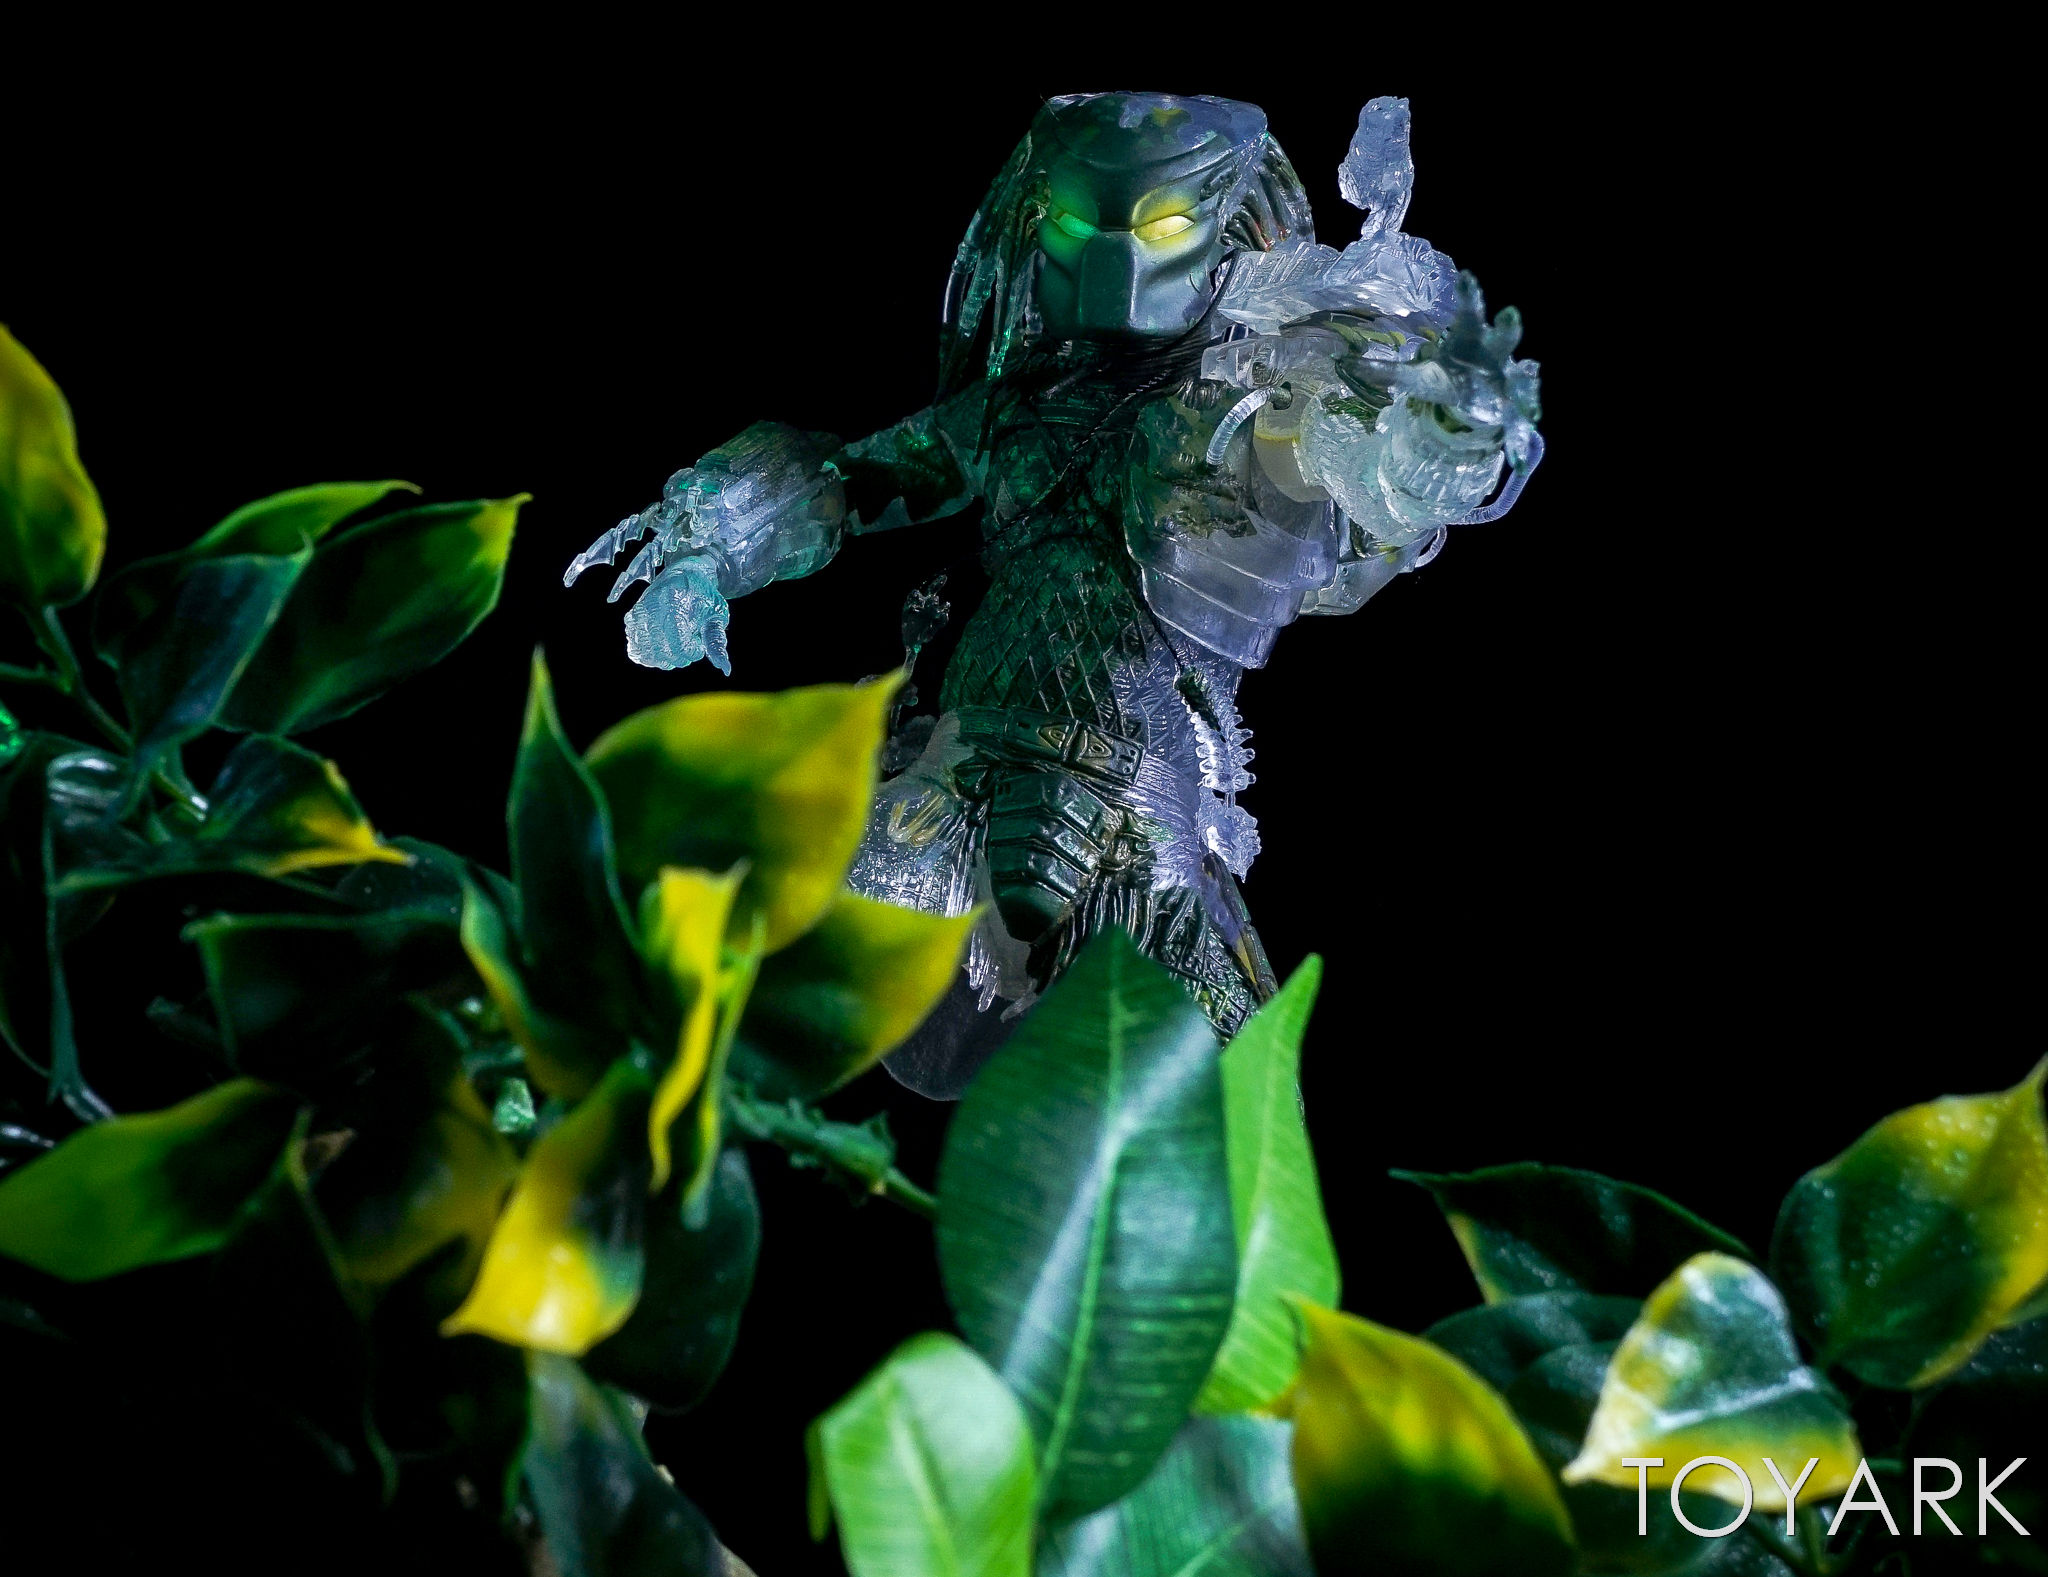 http://news.toyark.com/wp-content/uploads/sites/4/2017/03/NECA-Jungle-Demon-Predator-030.jpg